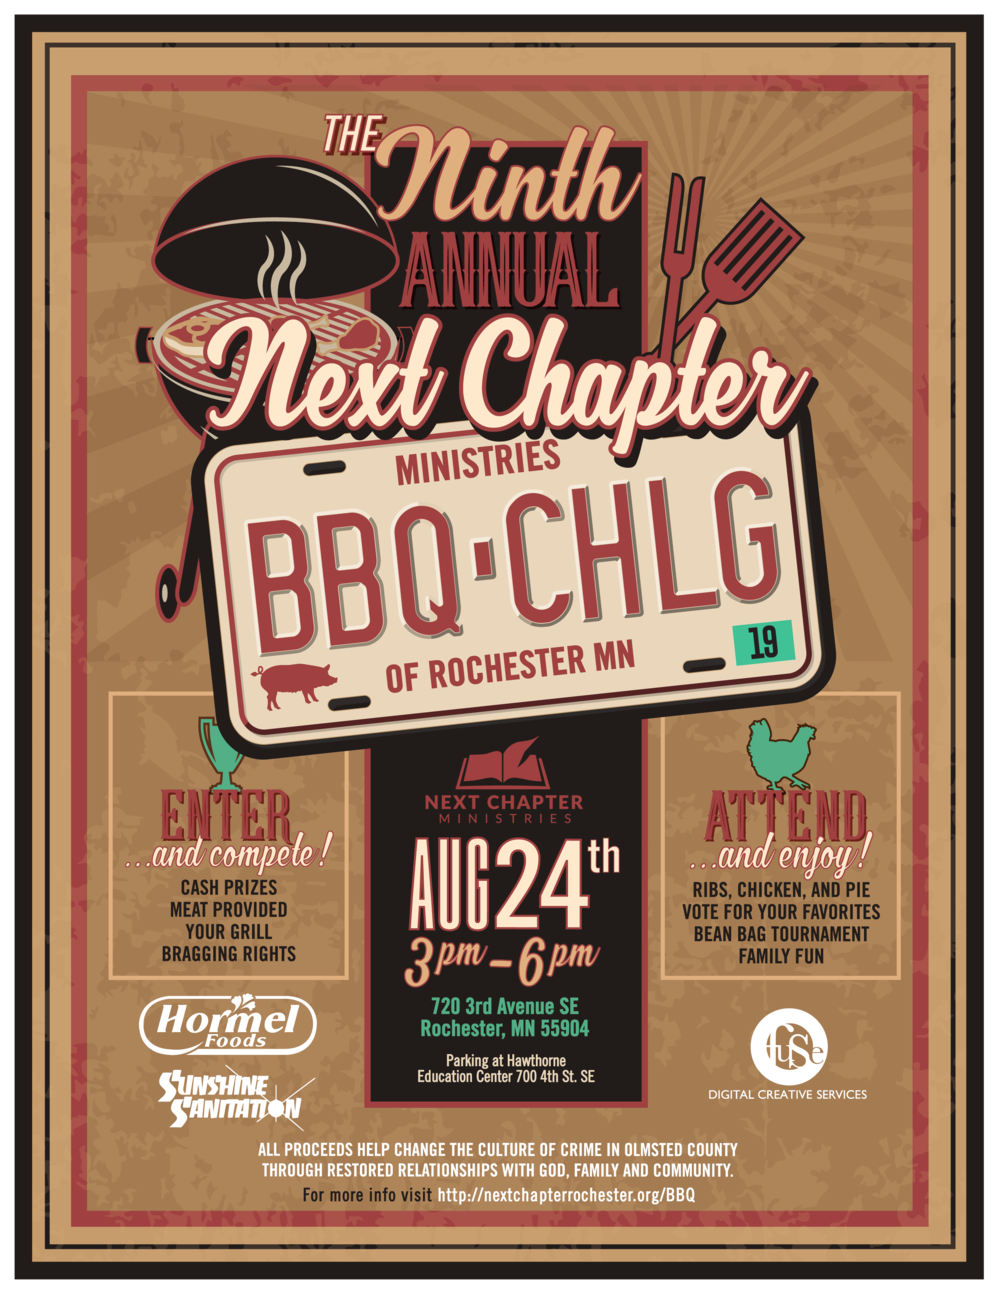 next-chapter-ministries-bbq-challenge-2019